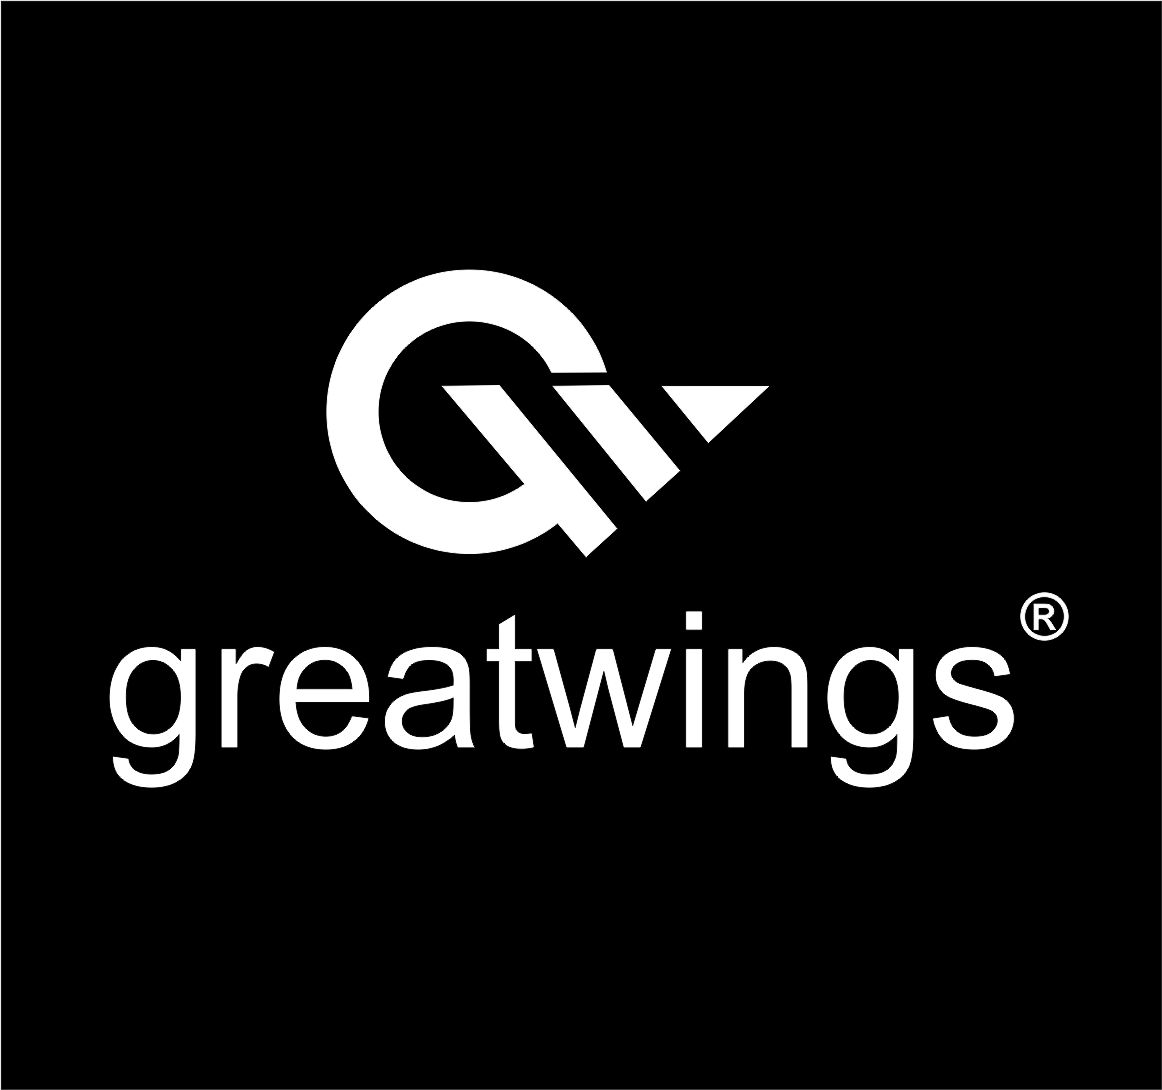 Greatwings